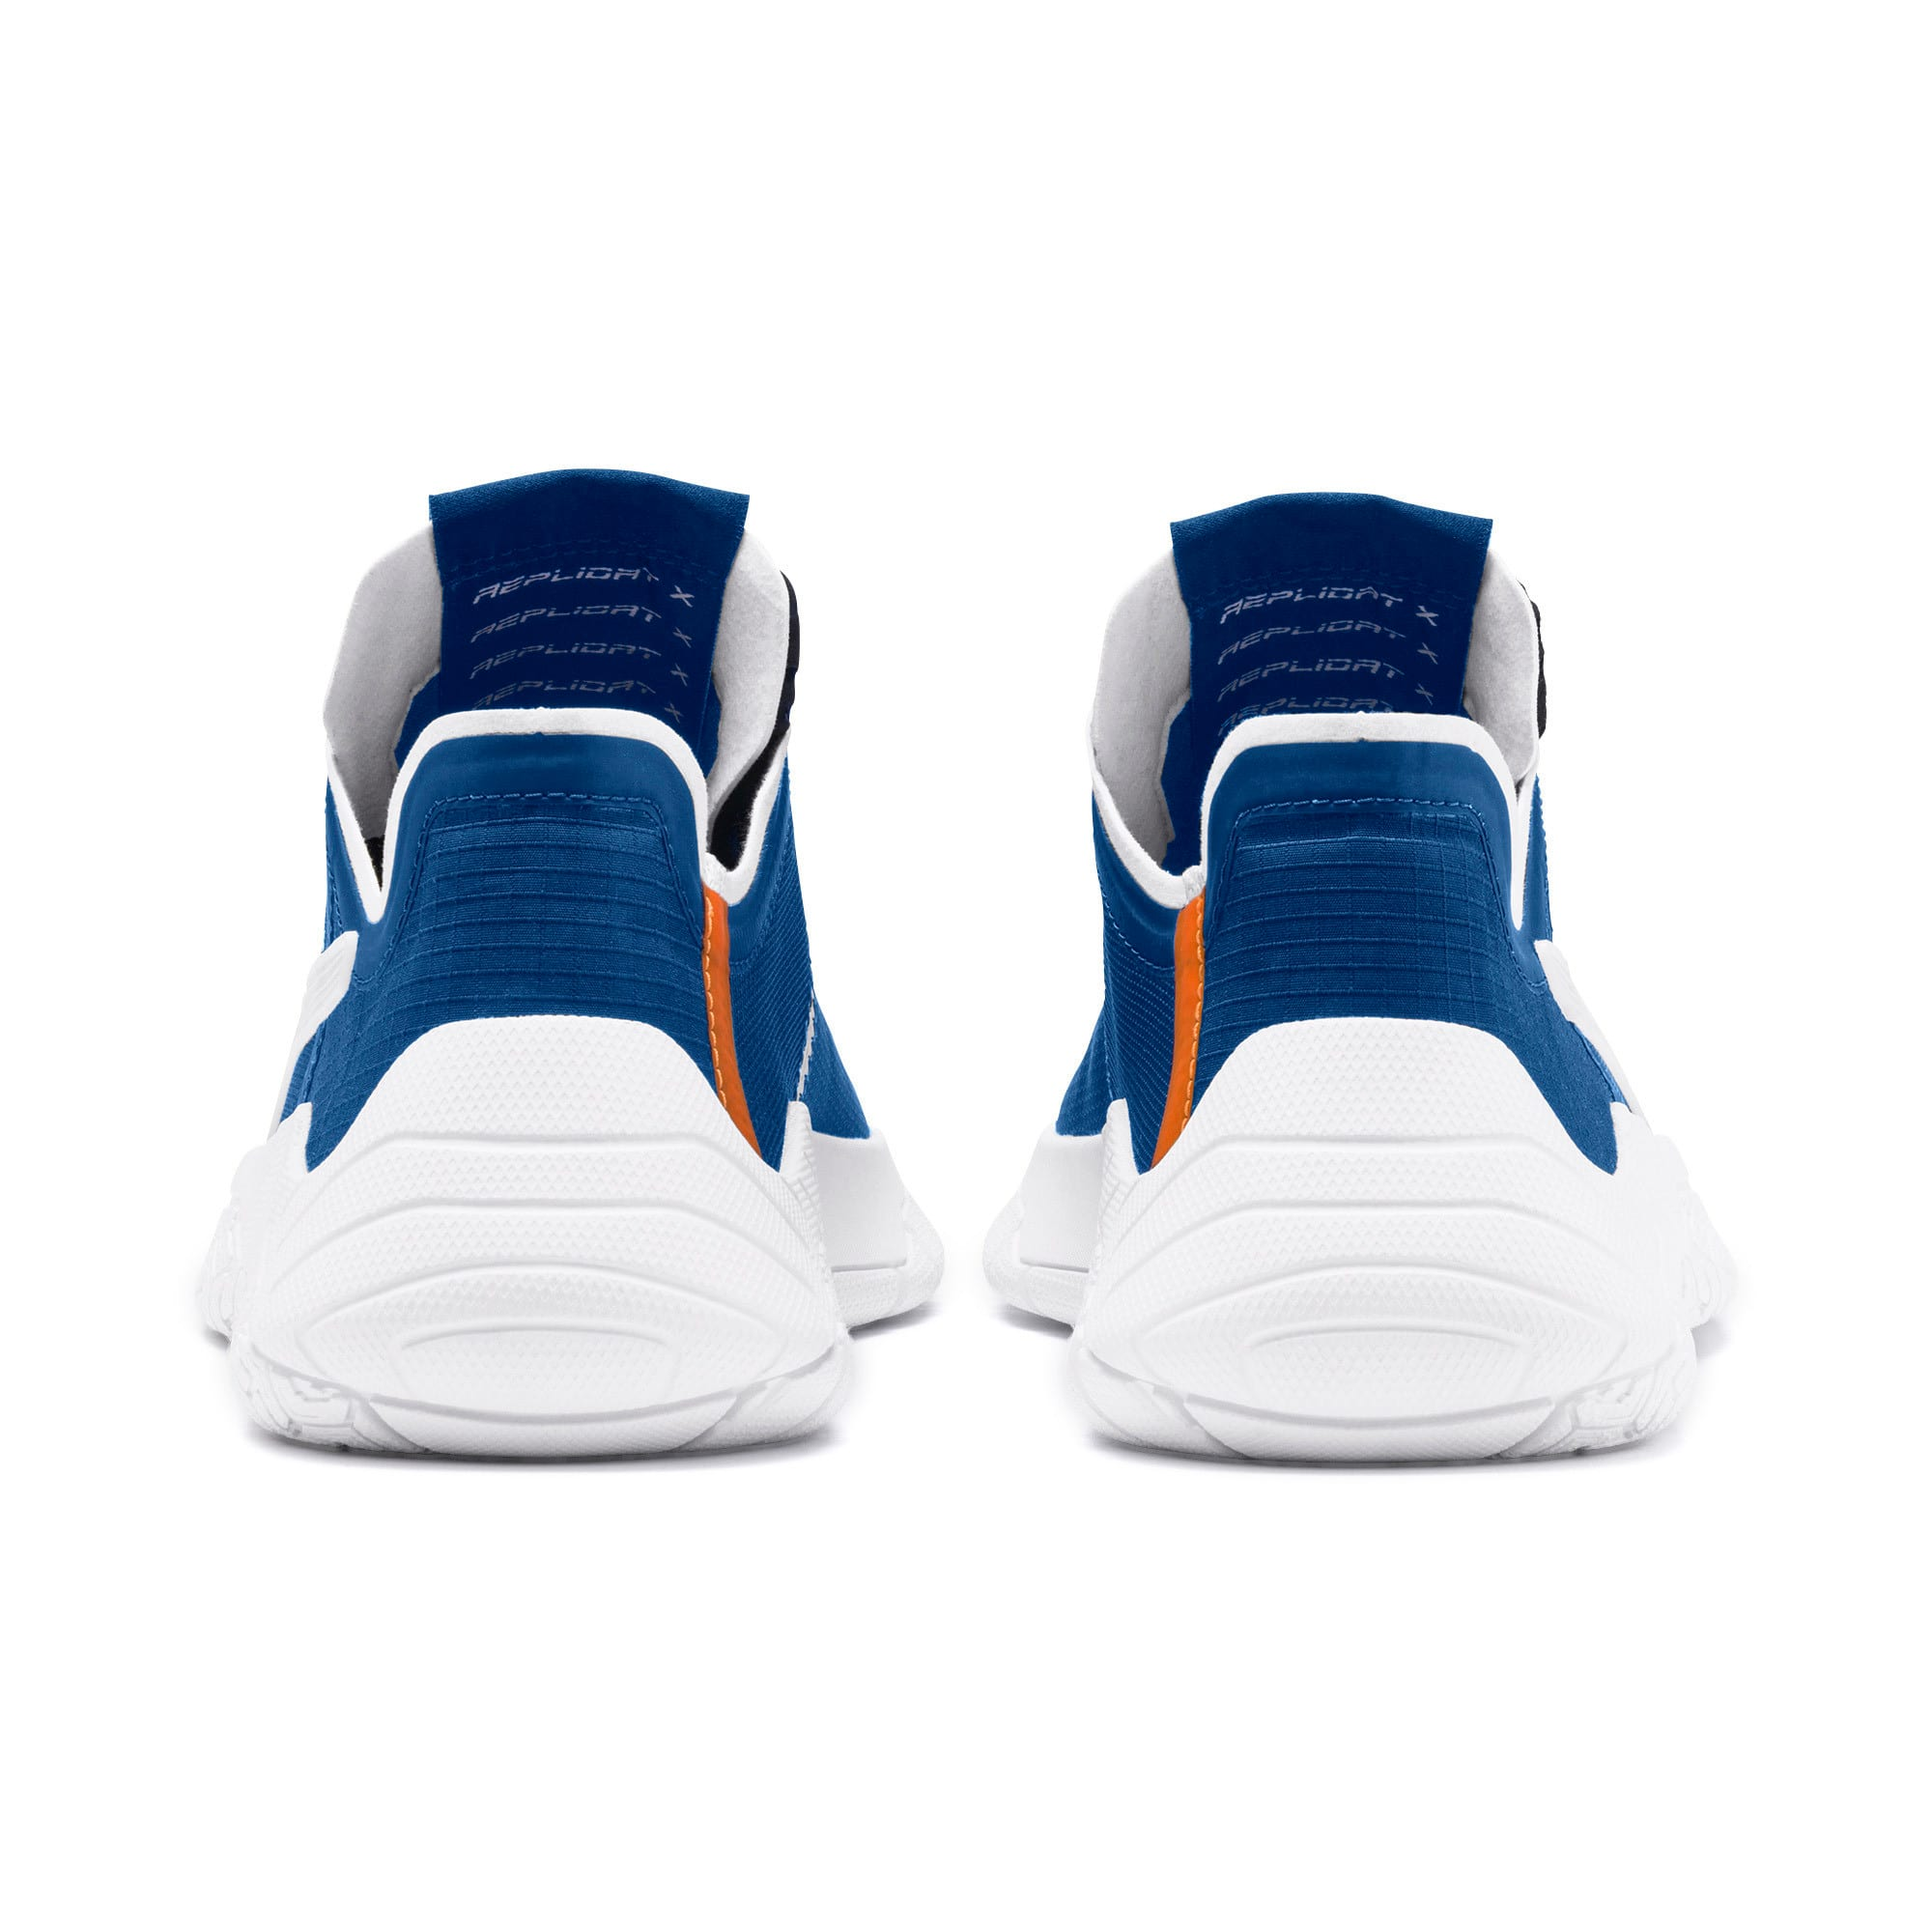 Thumbnail 3 of Replicat-X Circuit Trainers, Galaxy Blue-Puma White, medium